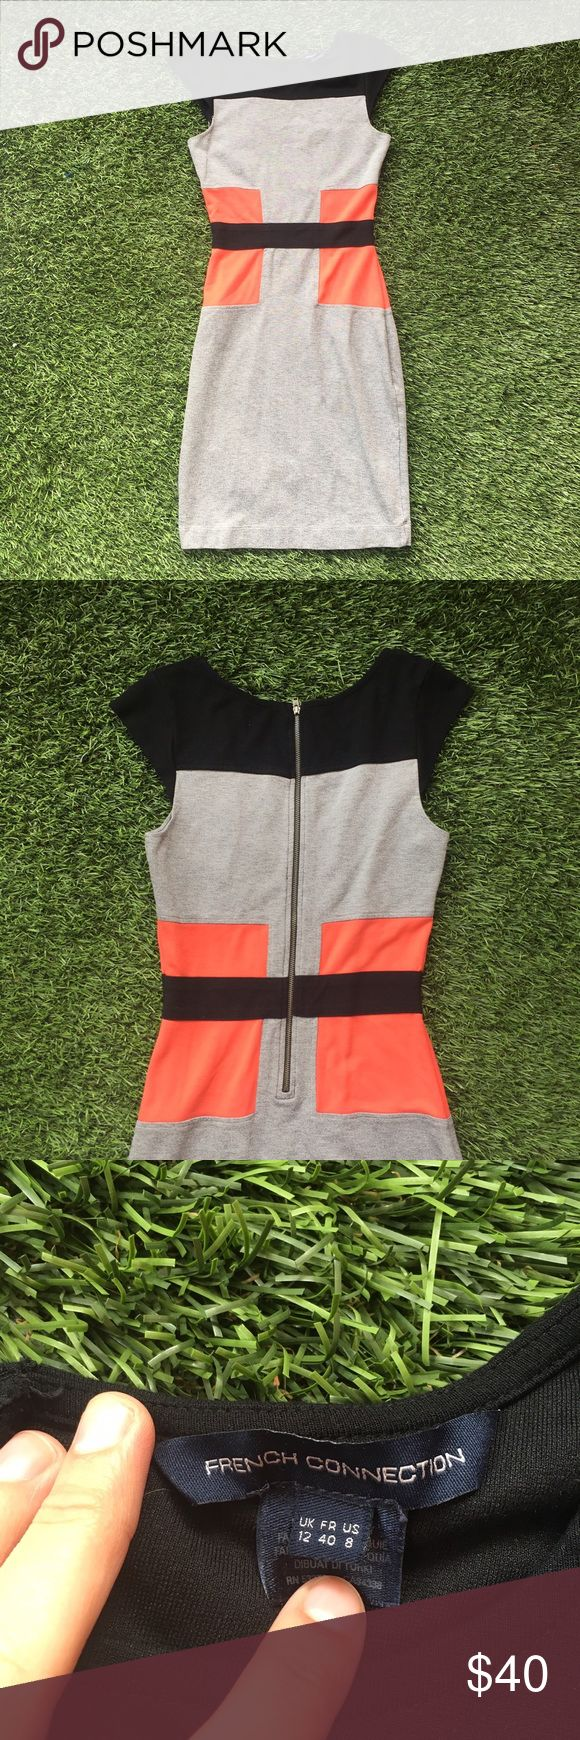 FCUK Colorblock bodycon dress Gorgeous color block dress by French Connection. Like new condition. Beautiful coral, slate and black. Note that this brand runs hella small! I wear size 27 jeans - usually a dress size 4 - and this fits me fantastic. Selling because I already have a similar dress... I like this one better but I let my boyfriend choose which to keep and he picked the other one. 💁🏻 French Connection Dresses